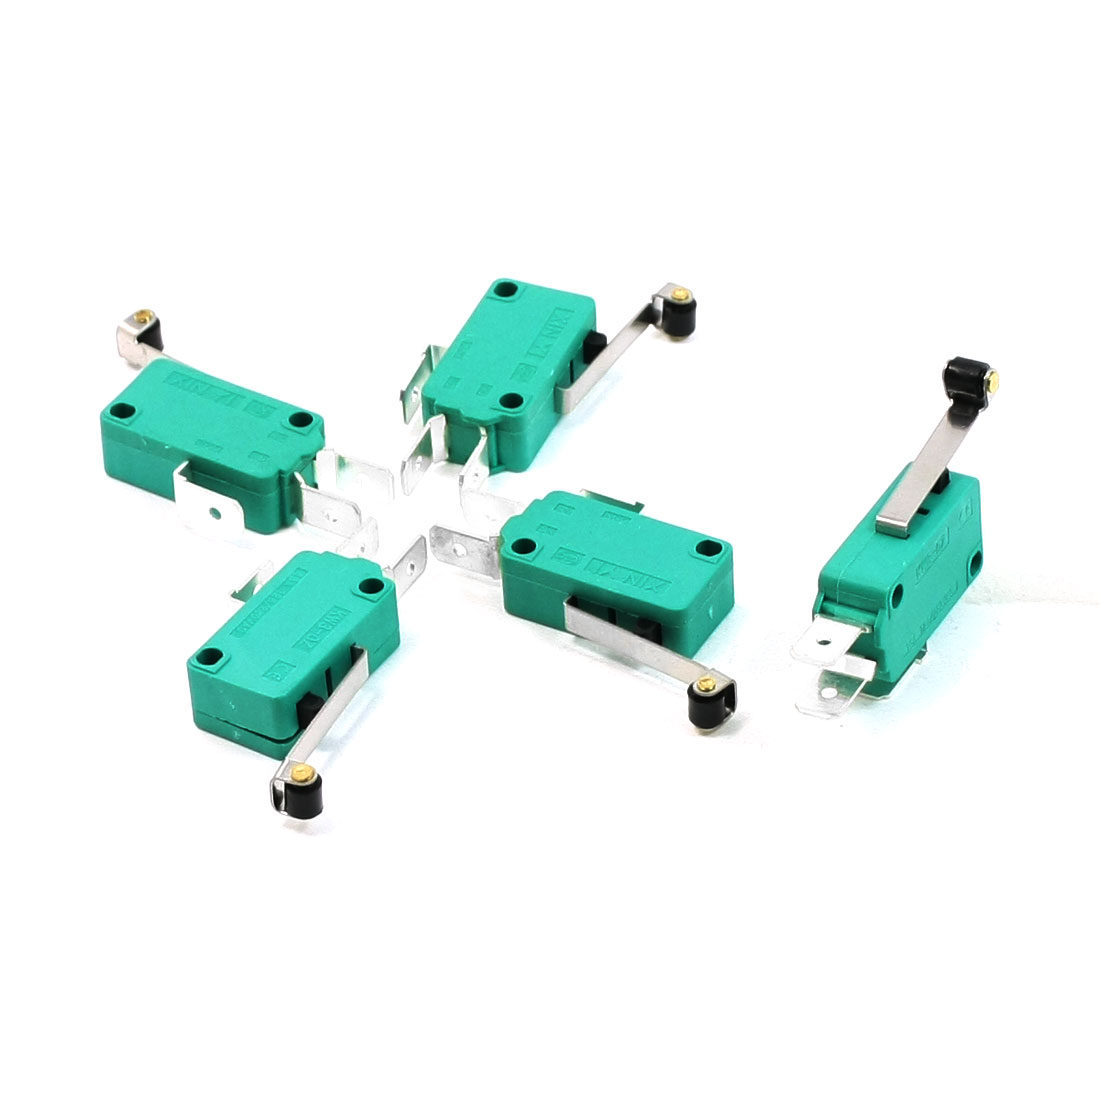 5 Pcs AC 250V 16A SPDT Long Hinge Roller Lever Miniature Micro Switch Green